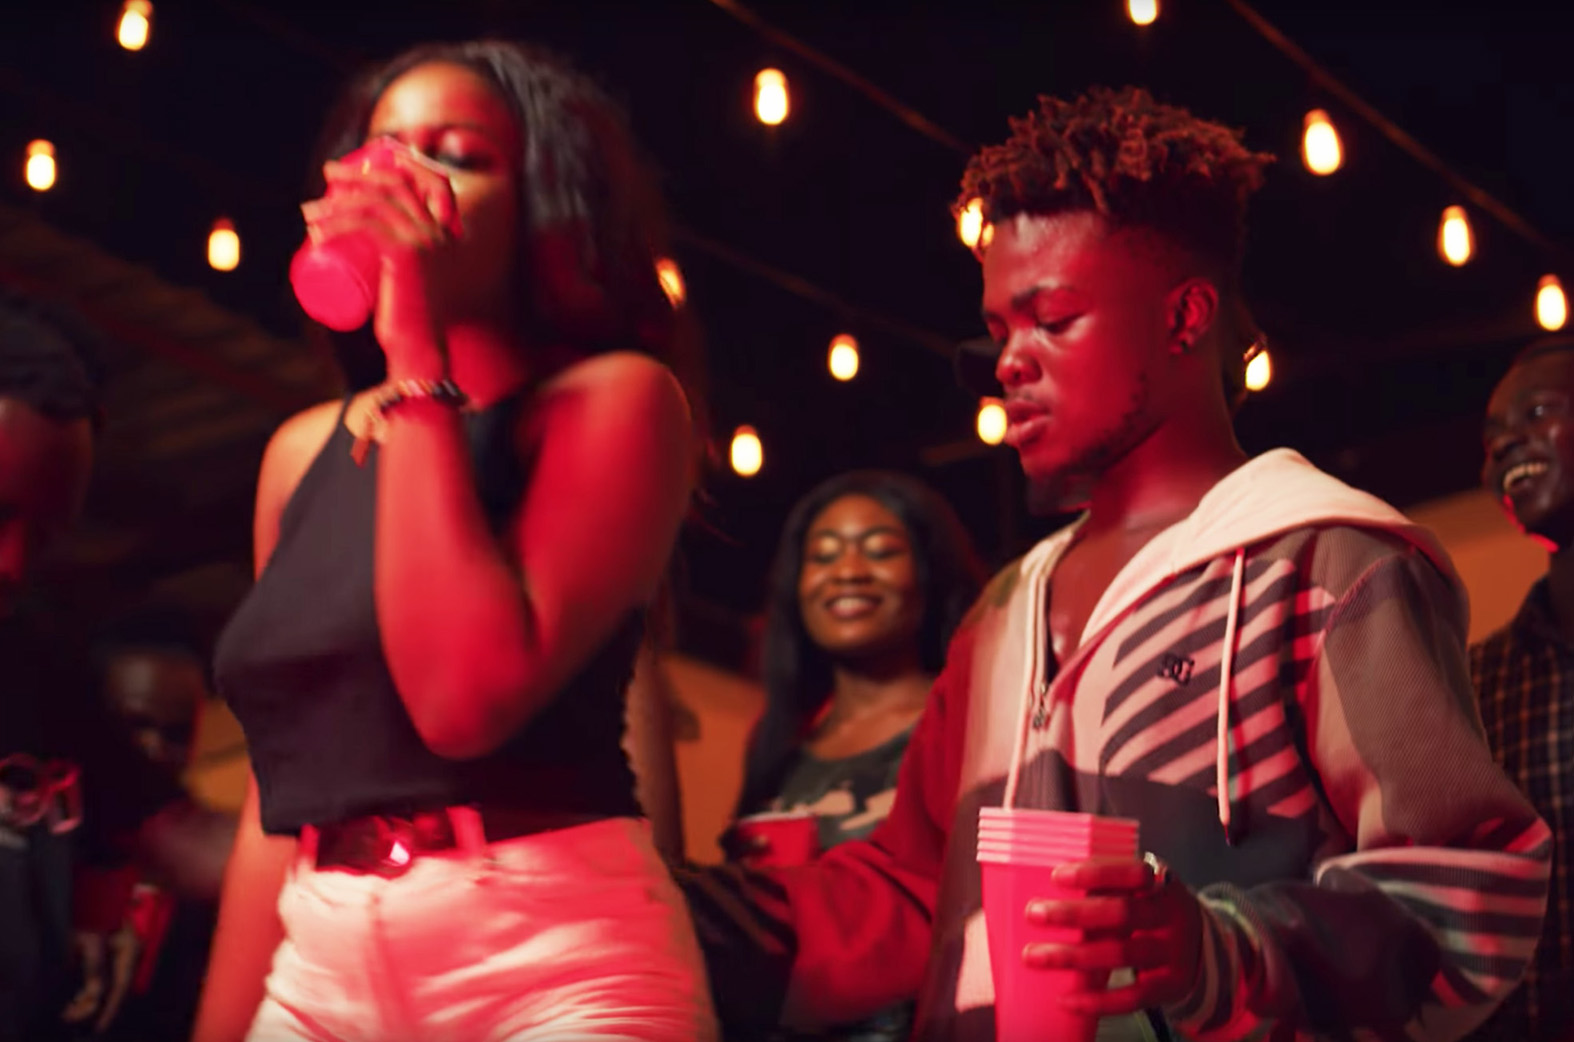 Video: Wiase Y3 D3 Remix by Quamina MP feat. Kwesi Arthur & Yung C